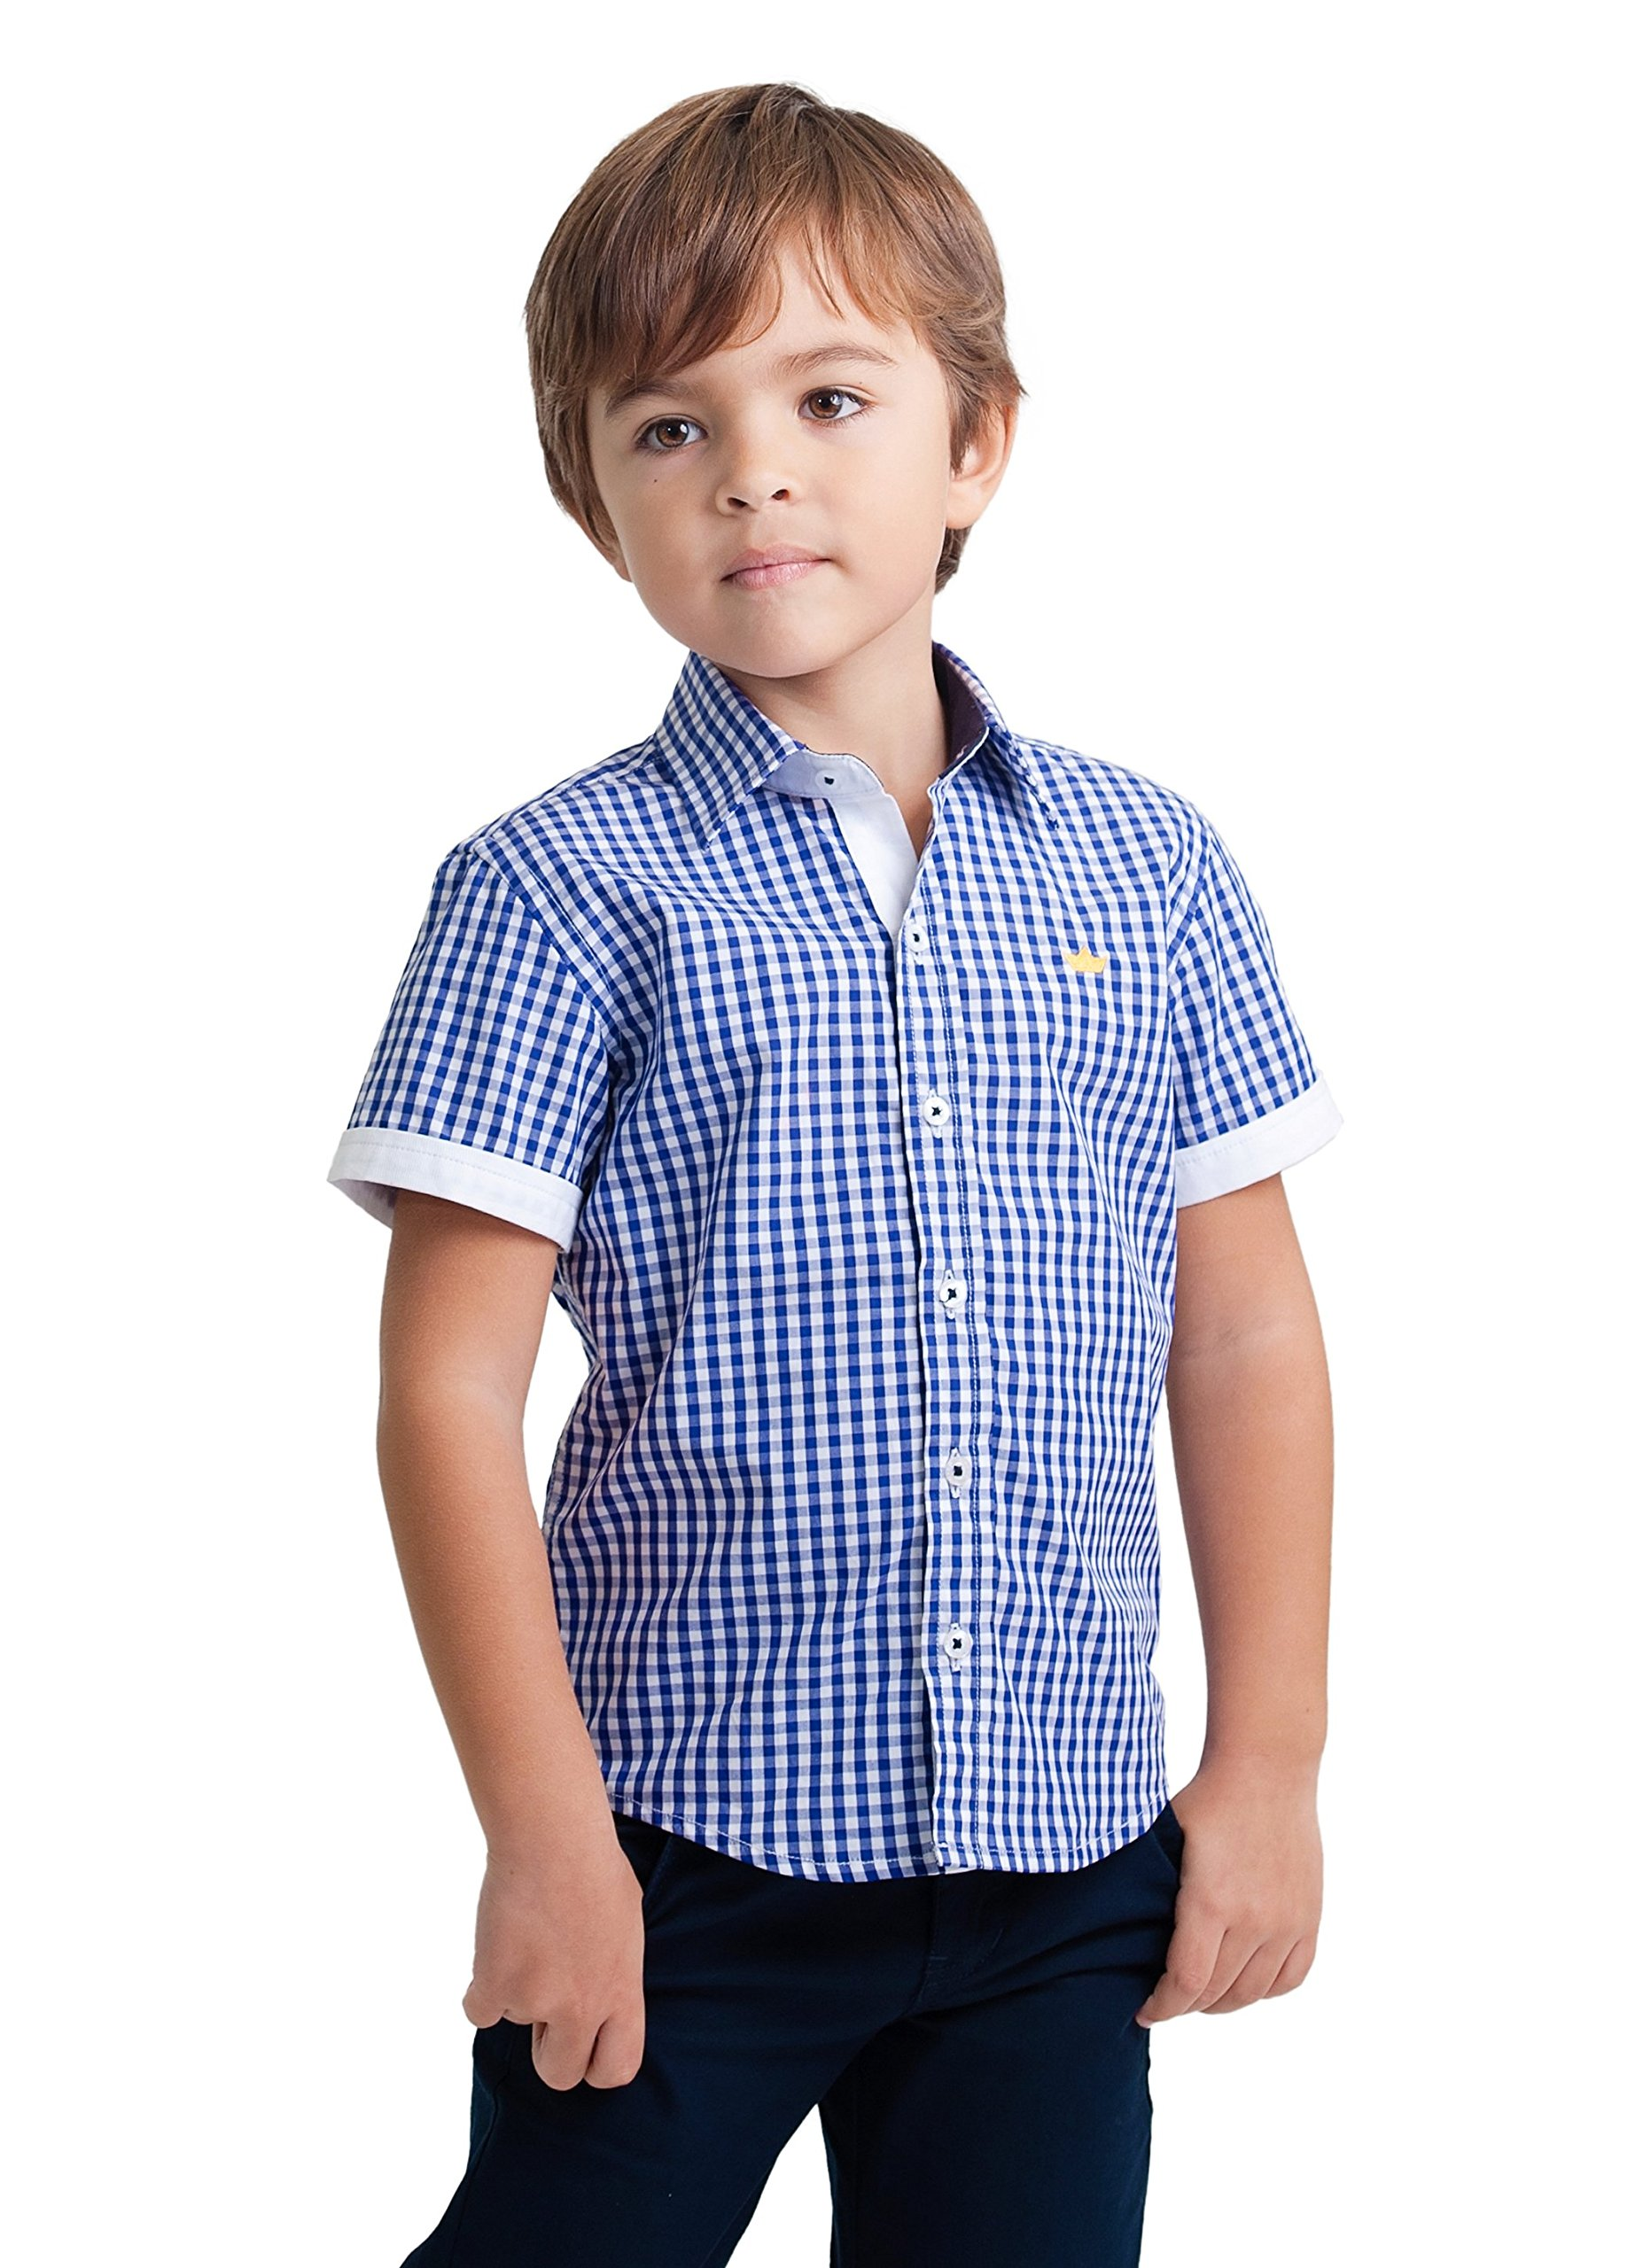 Dakomoda Boys' Short Sleeve Summer Dress Shirt - 100% Pima Cotton Blue Gingham Check Top 5T